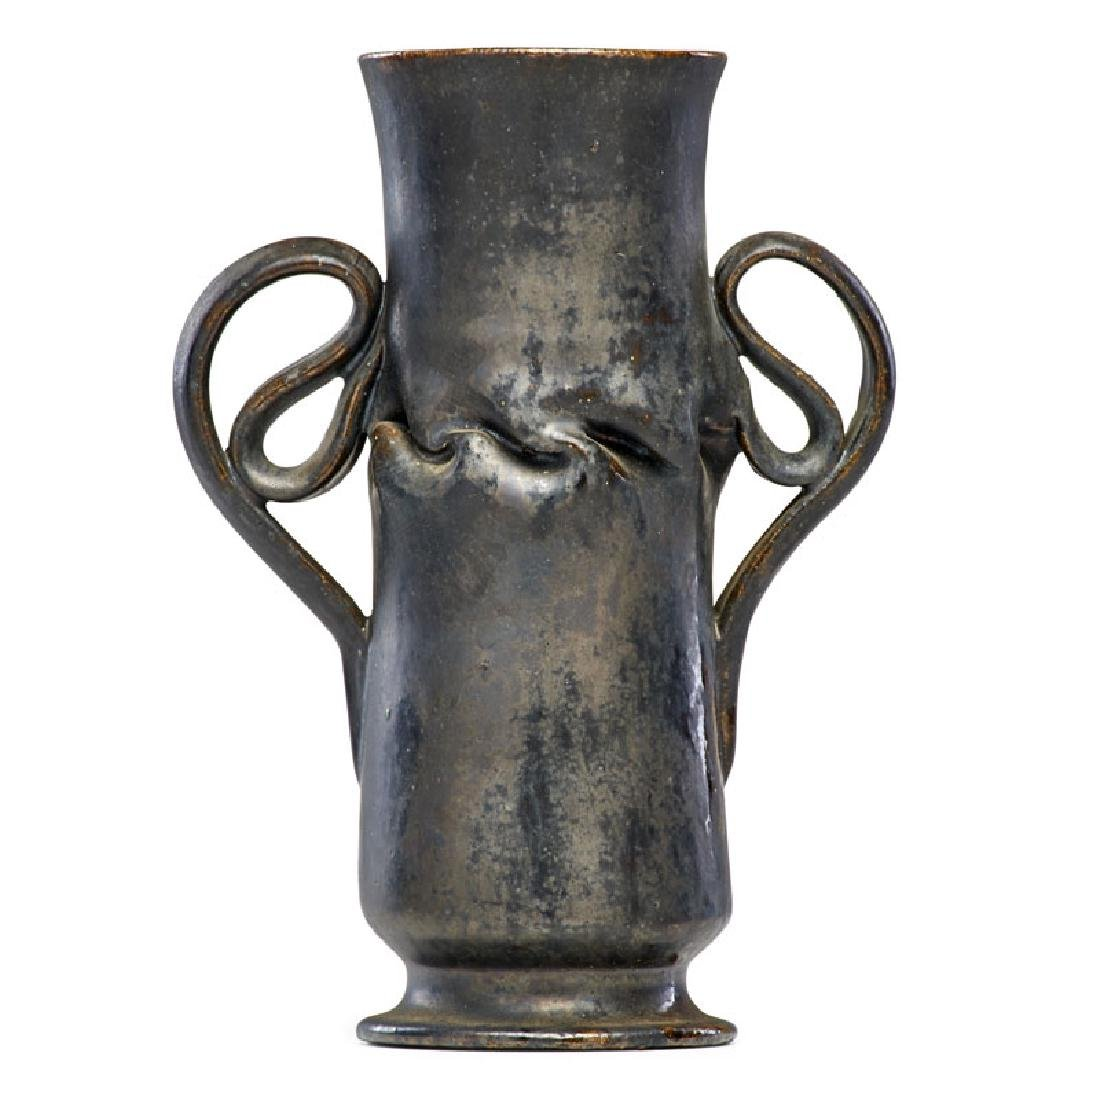 GEORGE OHR Vase with ear handles